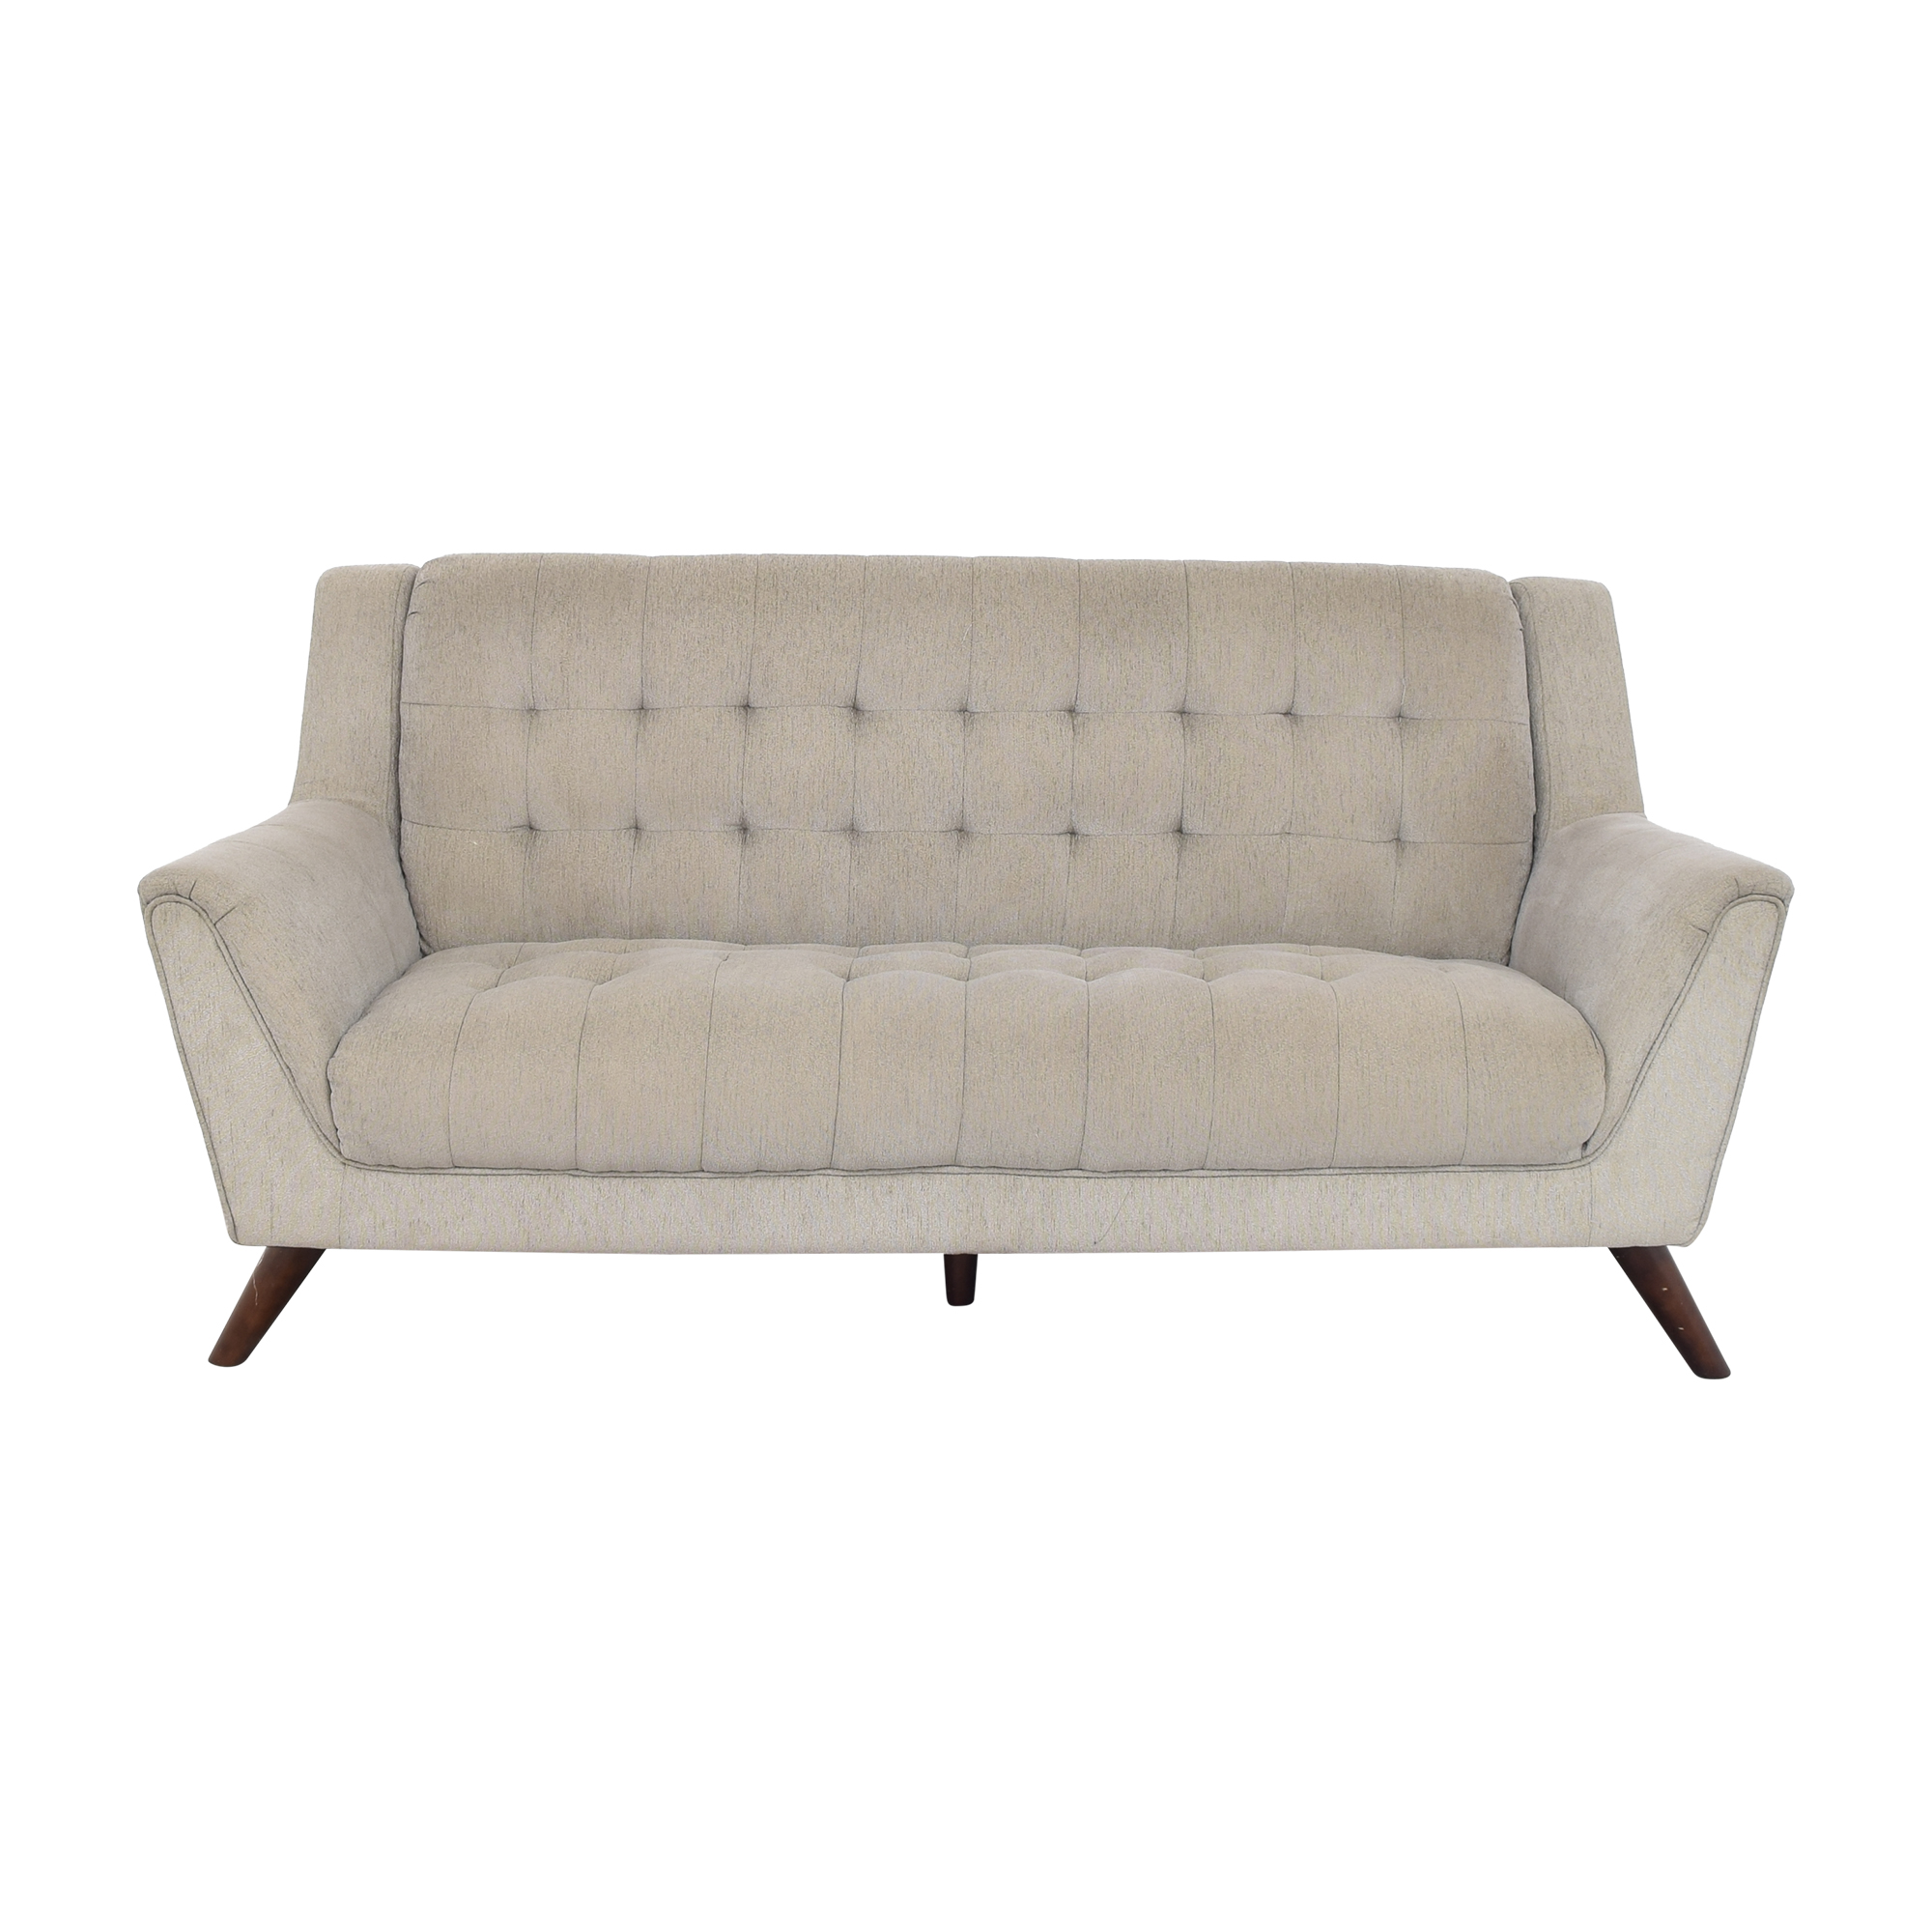 buy Coaster Fine Furniture Coaster Mid Century Sofa online